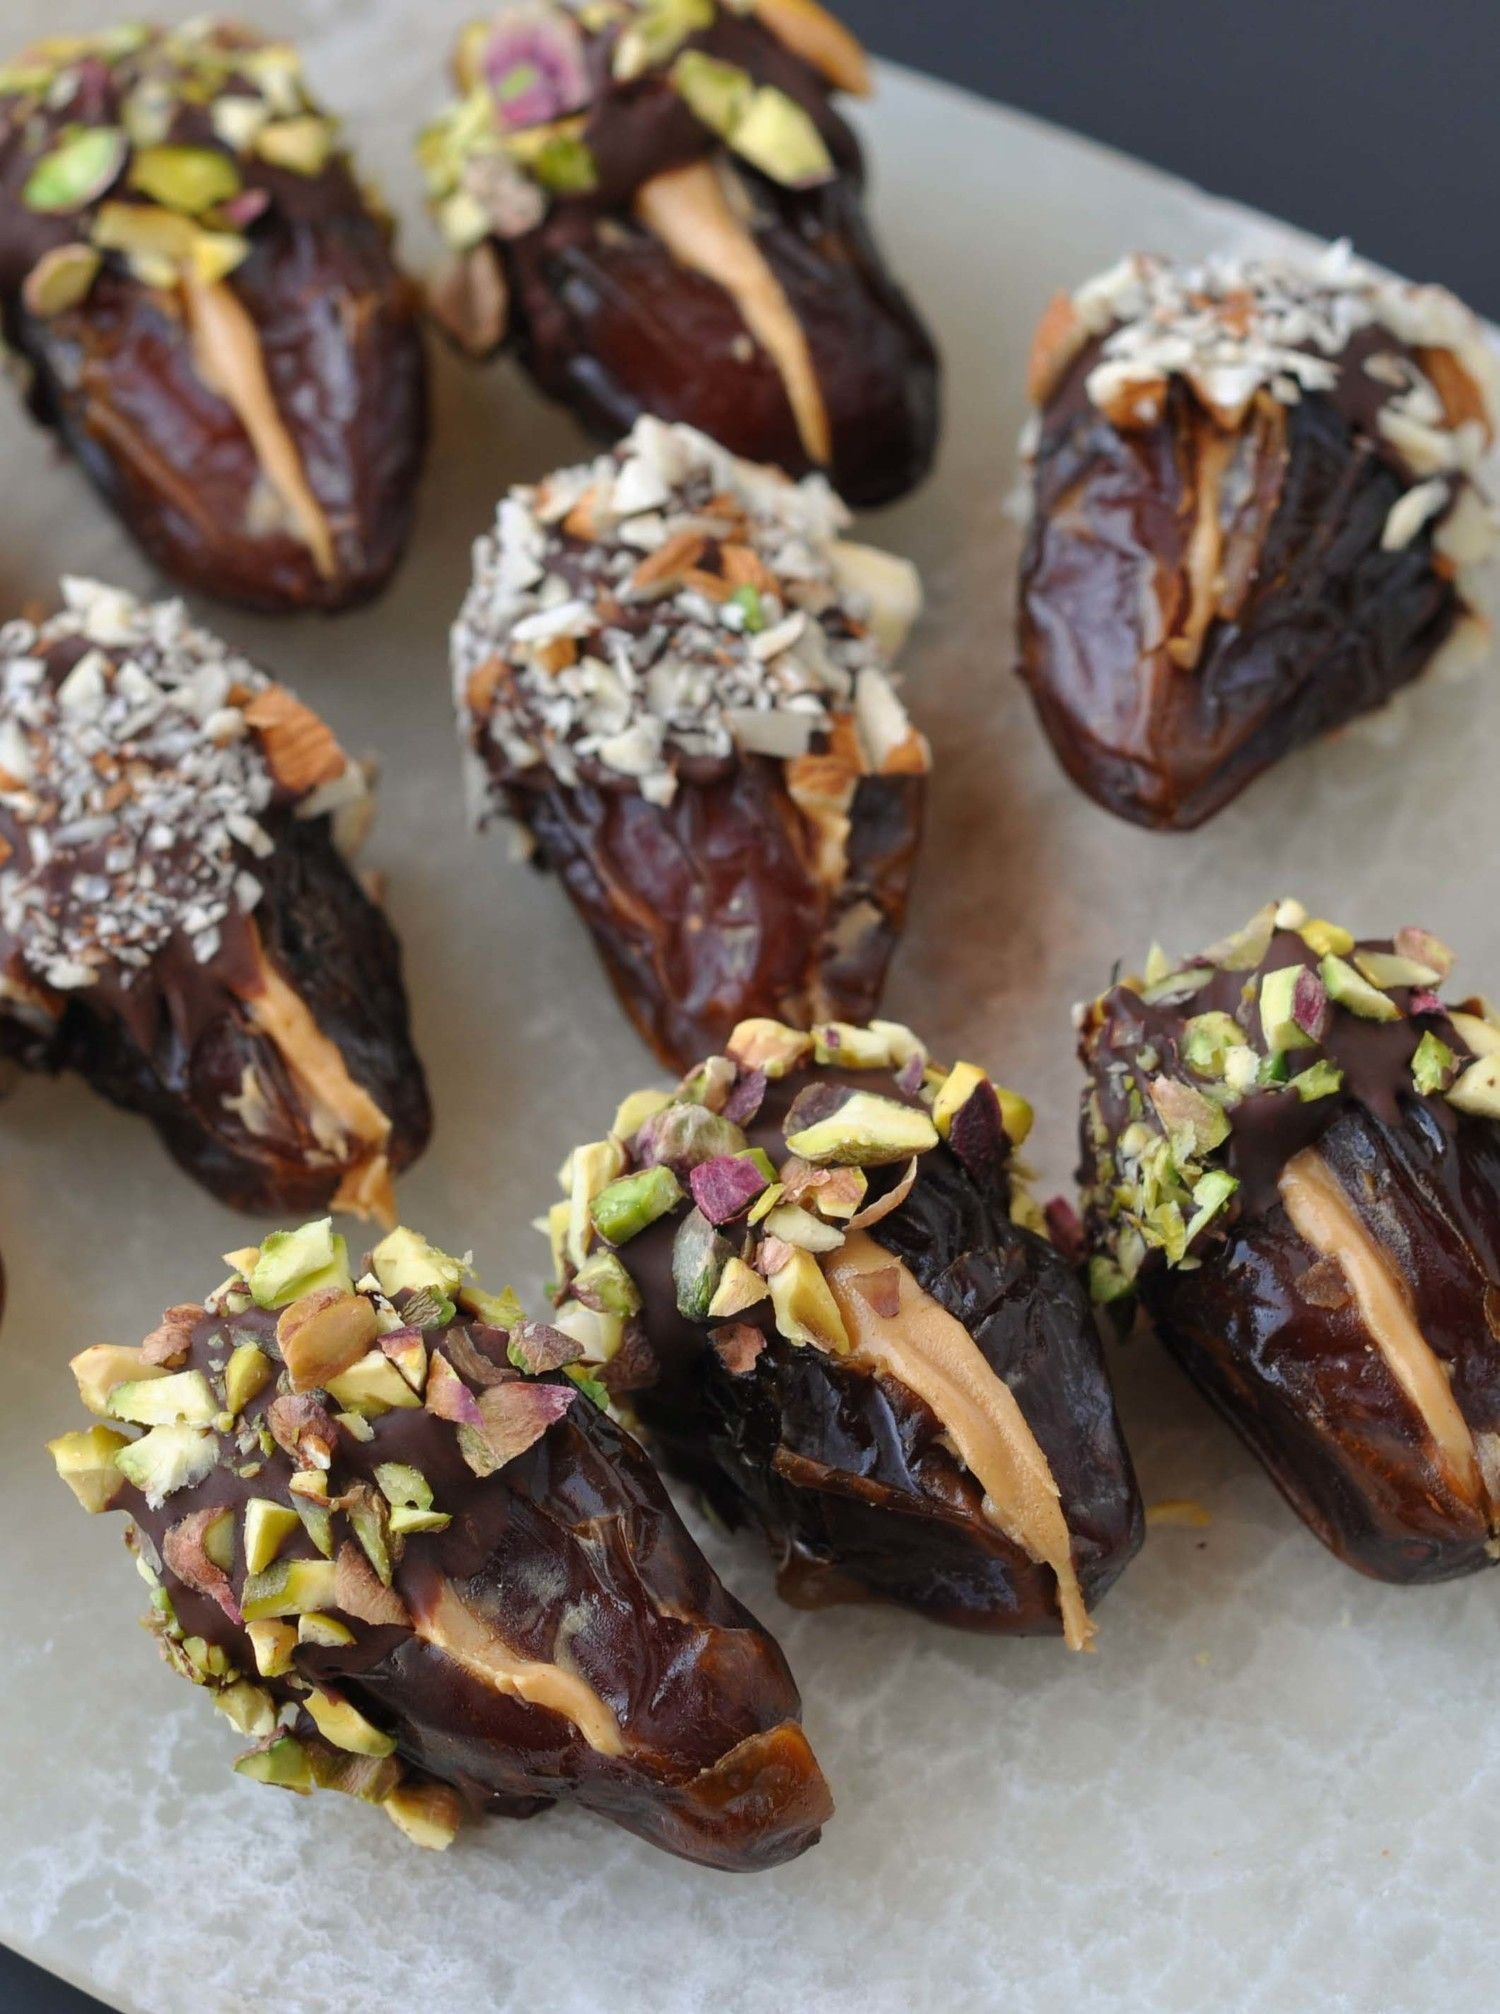 Peanut Butter Stuffed Chocolate Covered Dates This Healthy Table Recipe Dessert Recipes Snacks Guilt Free Dessert